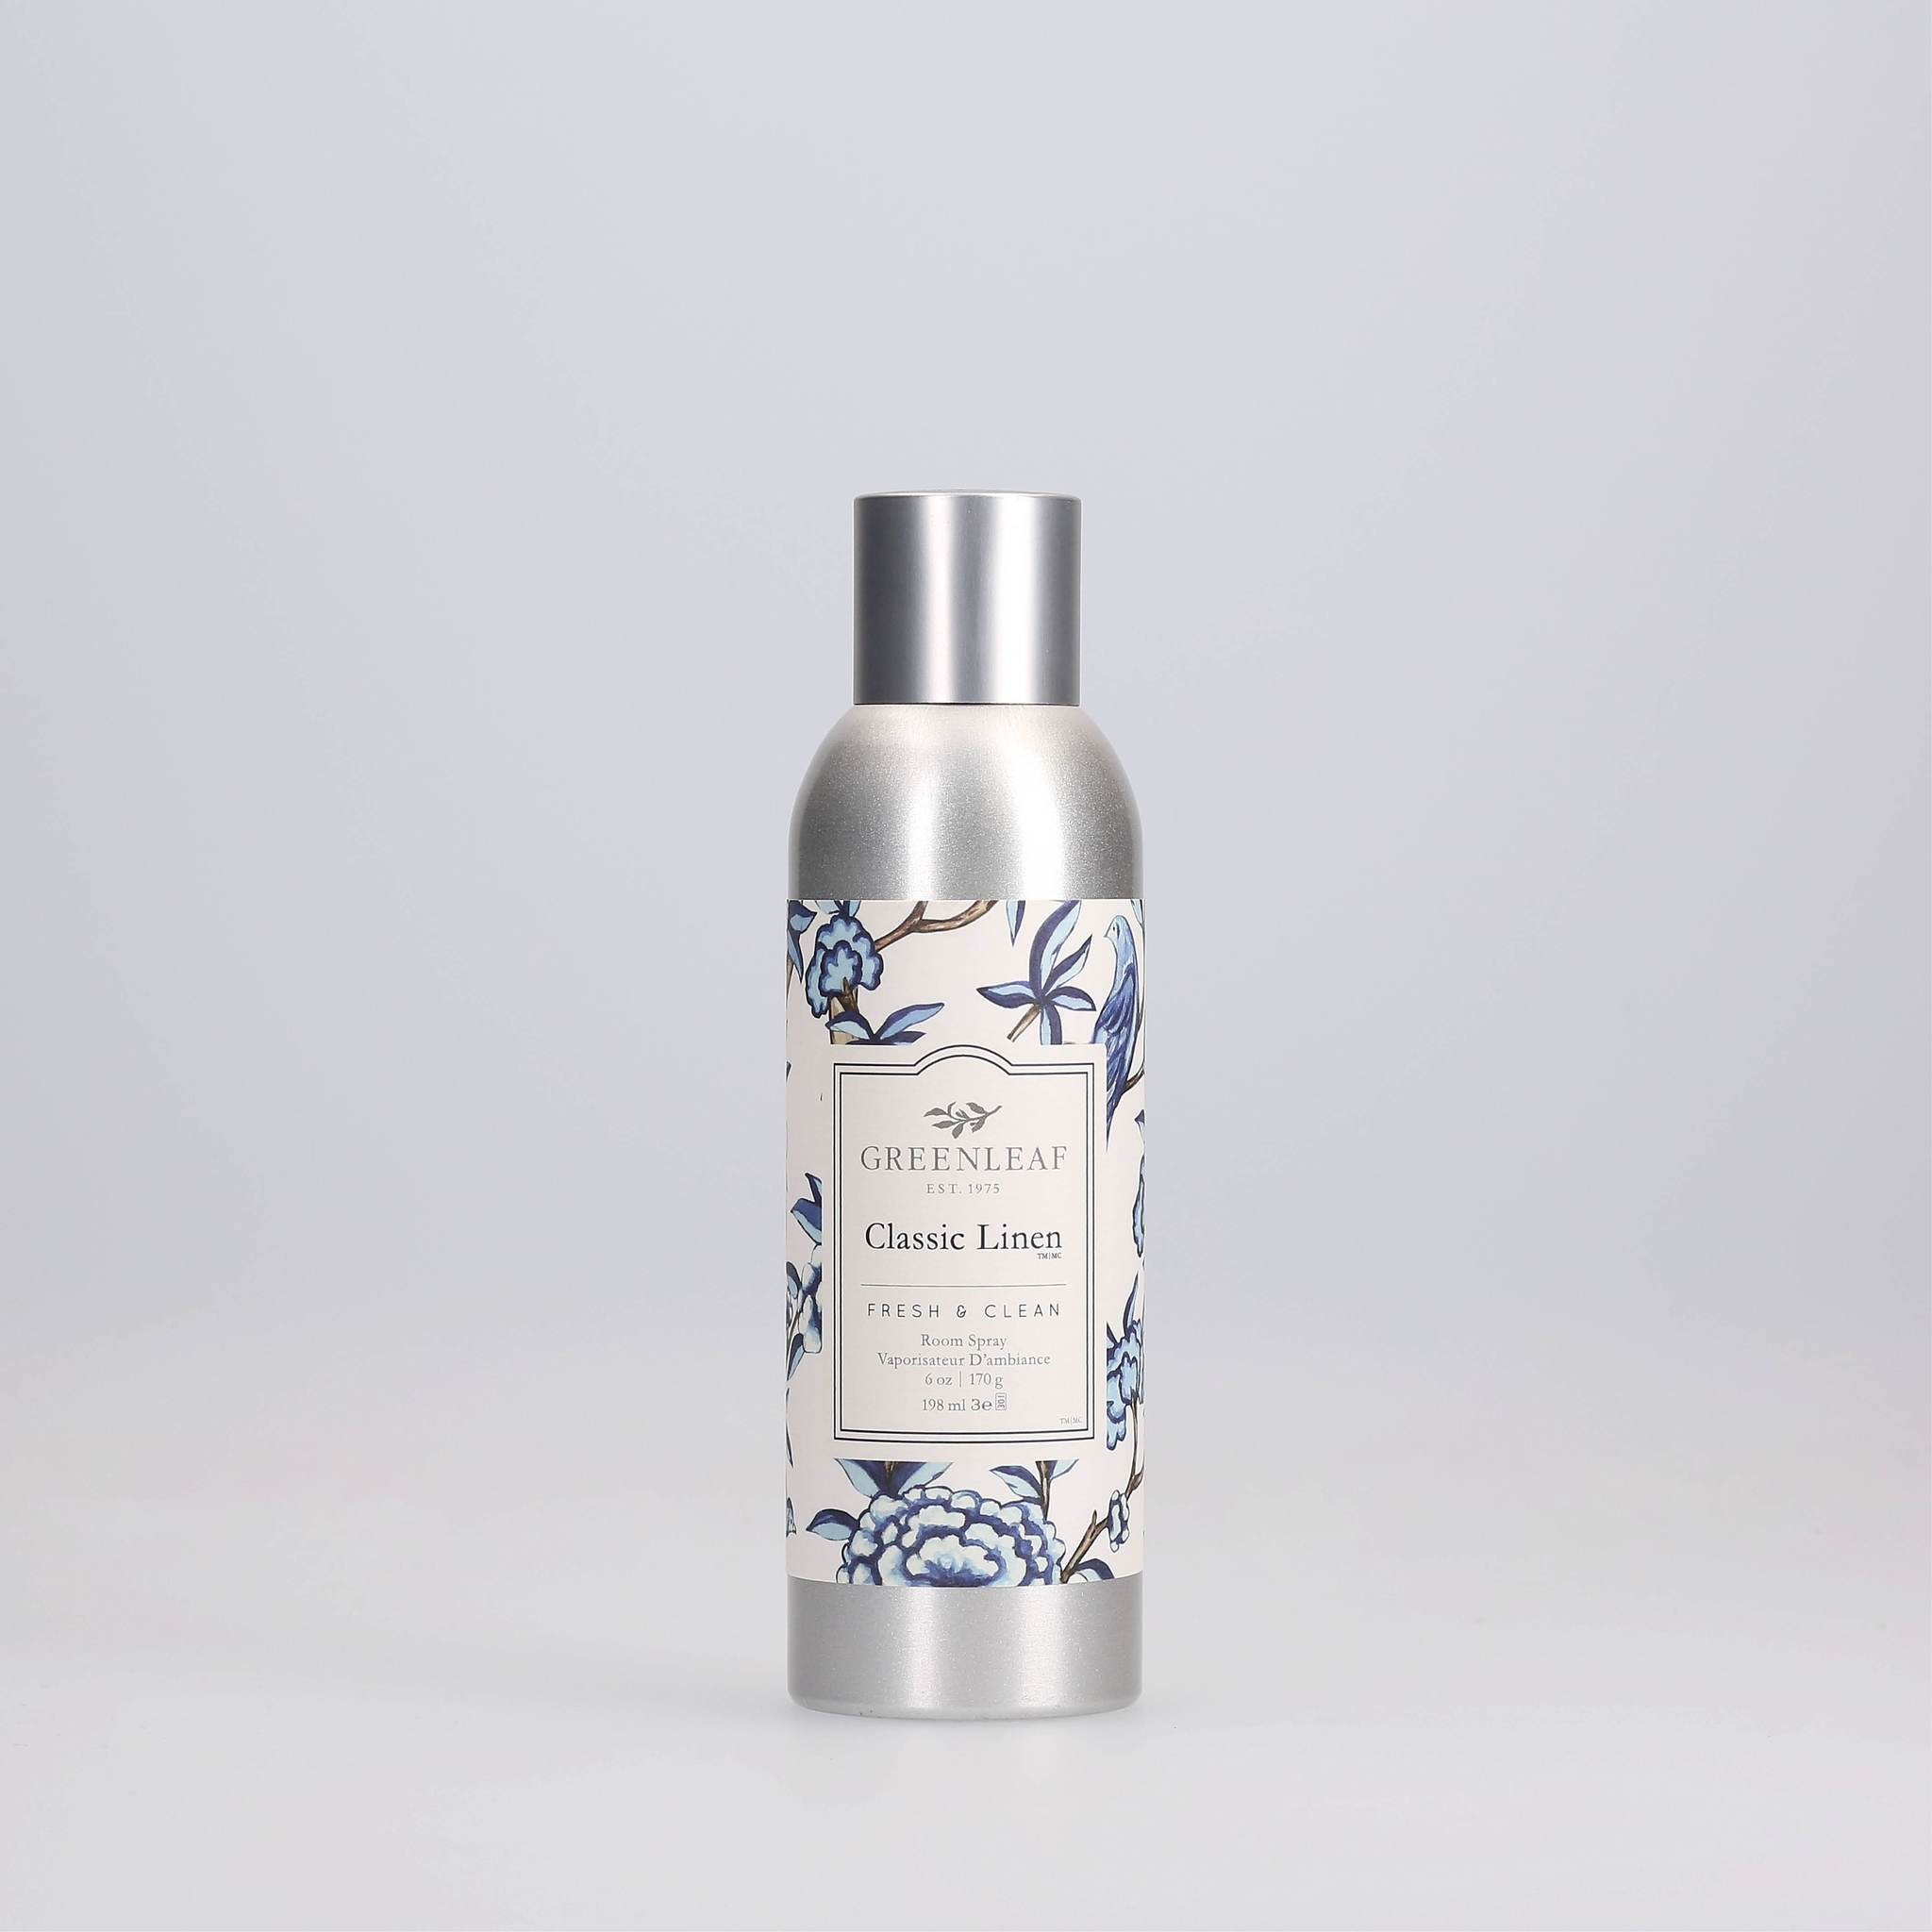 Greenleaf Room Spray